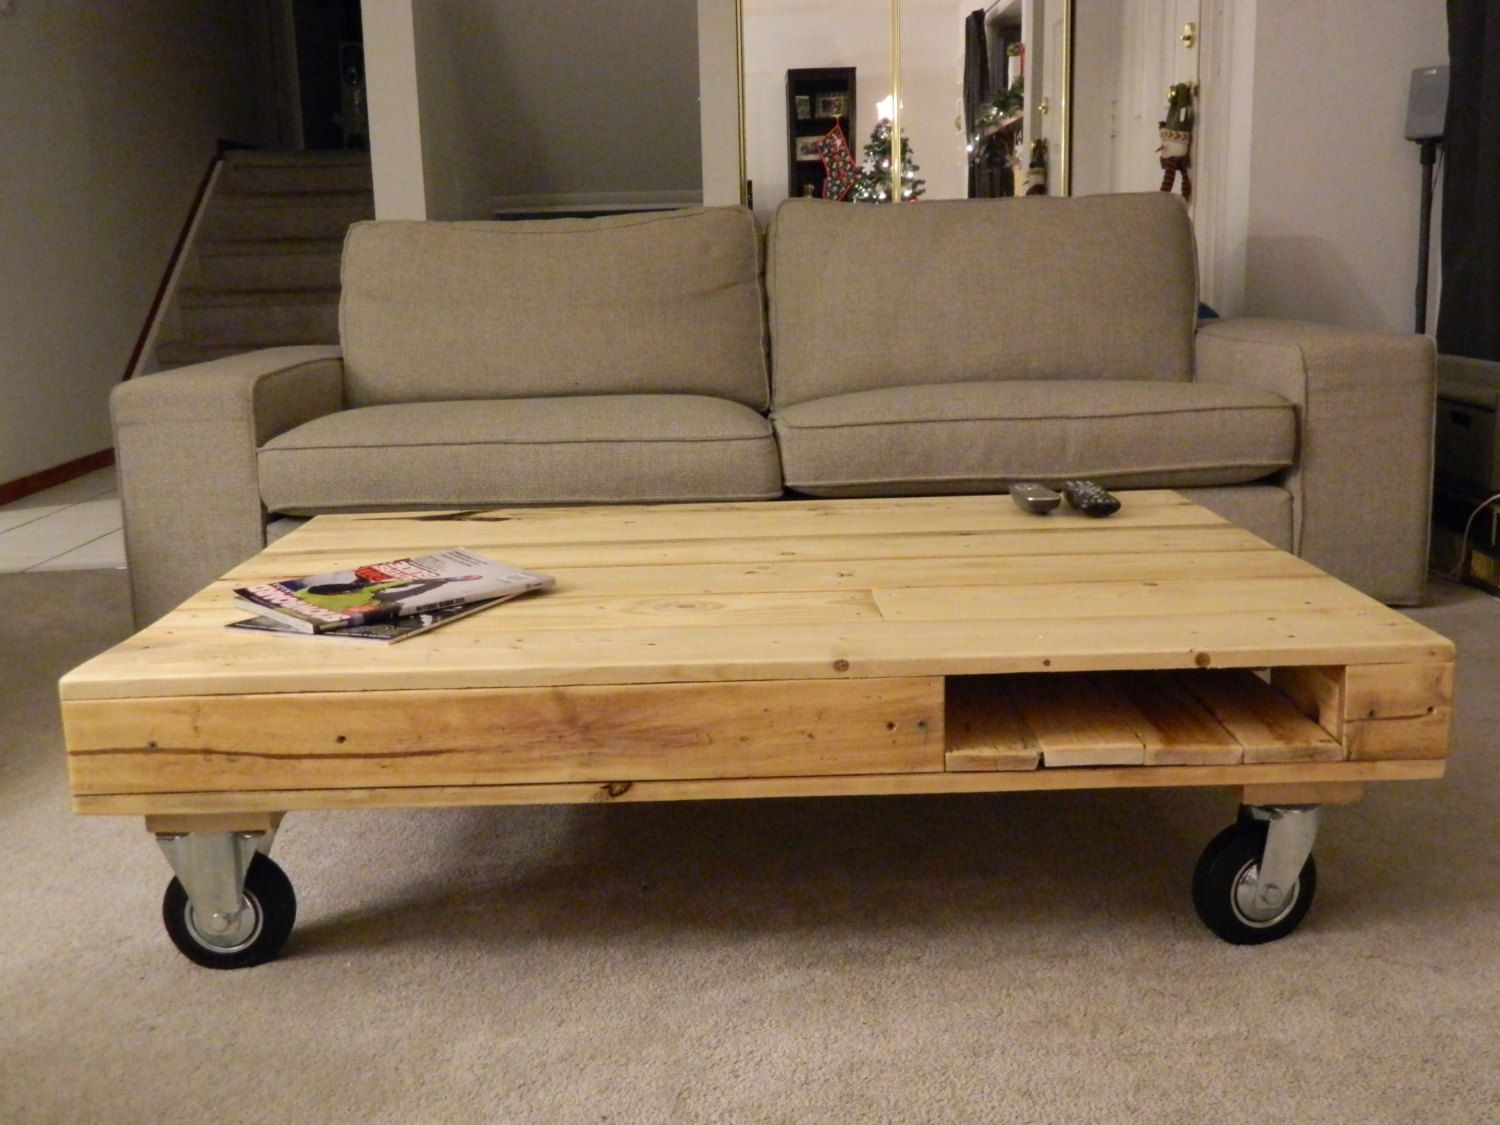 Related Image Coffee Table Reclaimed Wood Coffee Table Coffee Table Plans [ 1125 x 1500 Pixel ]